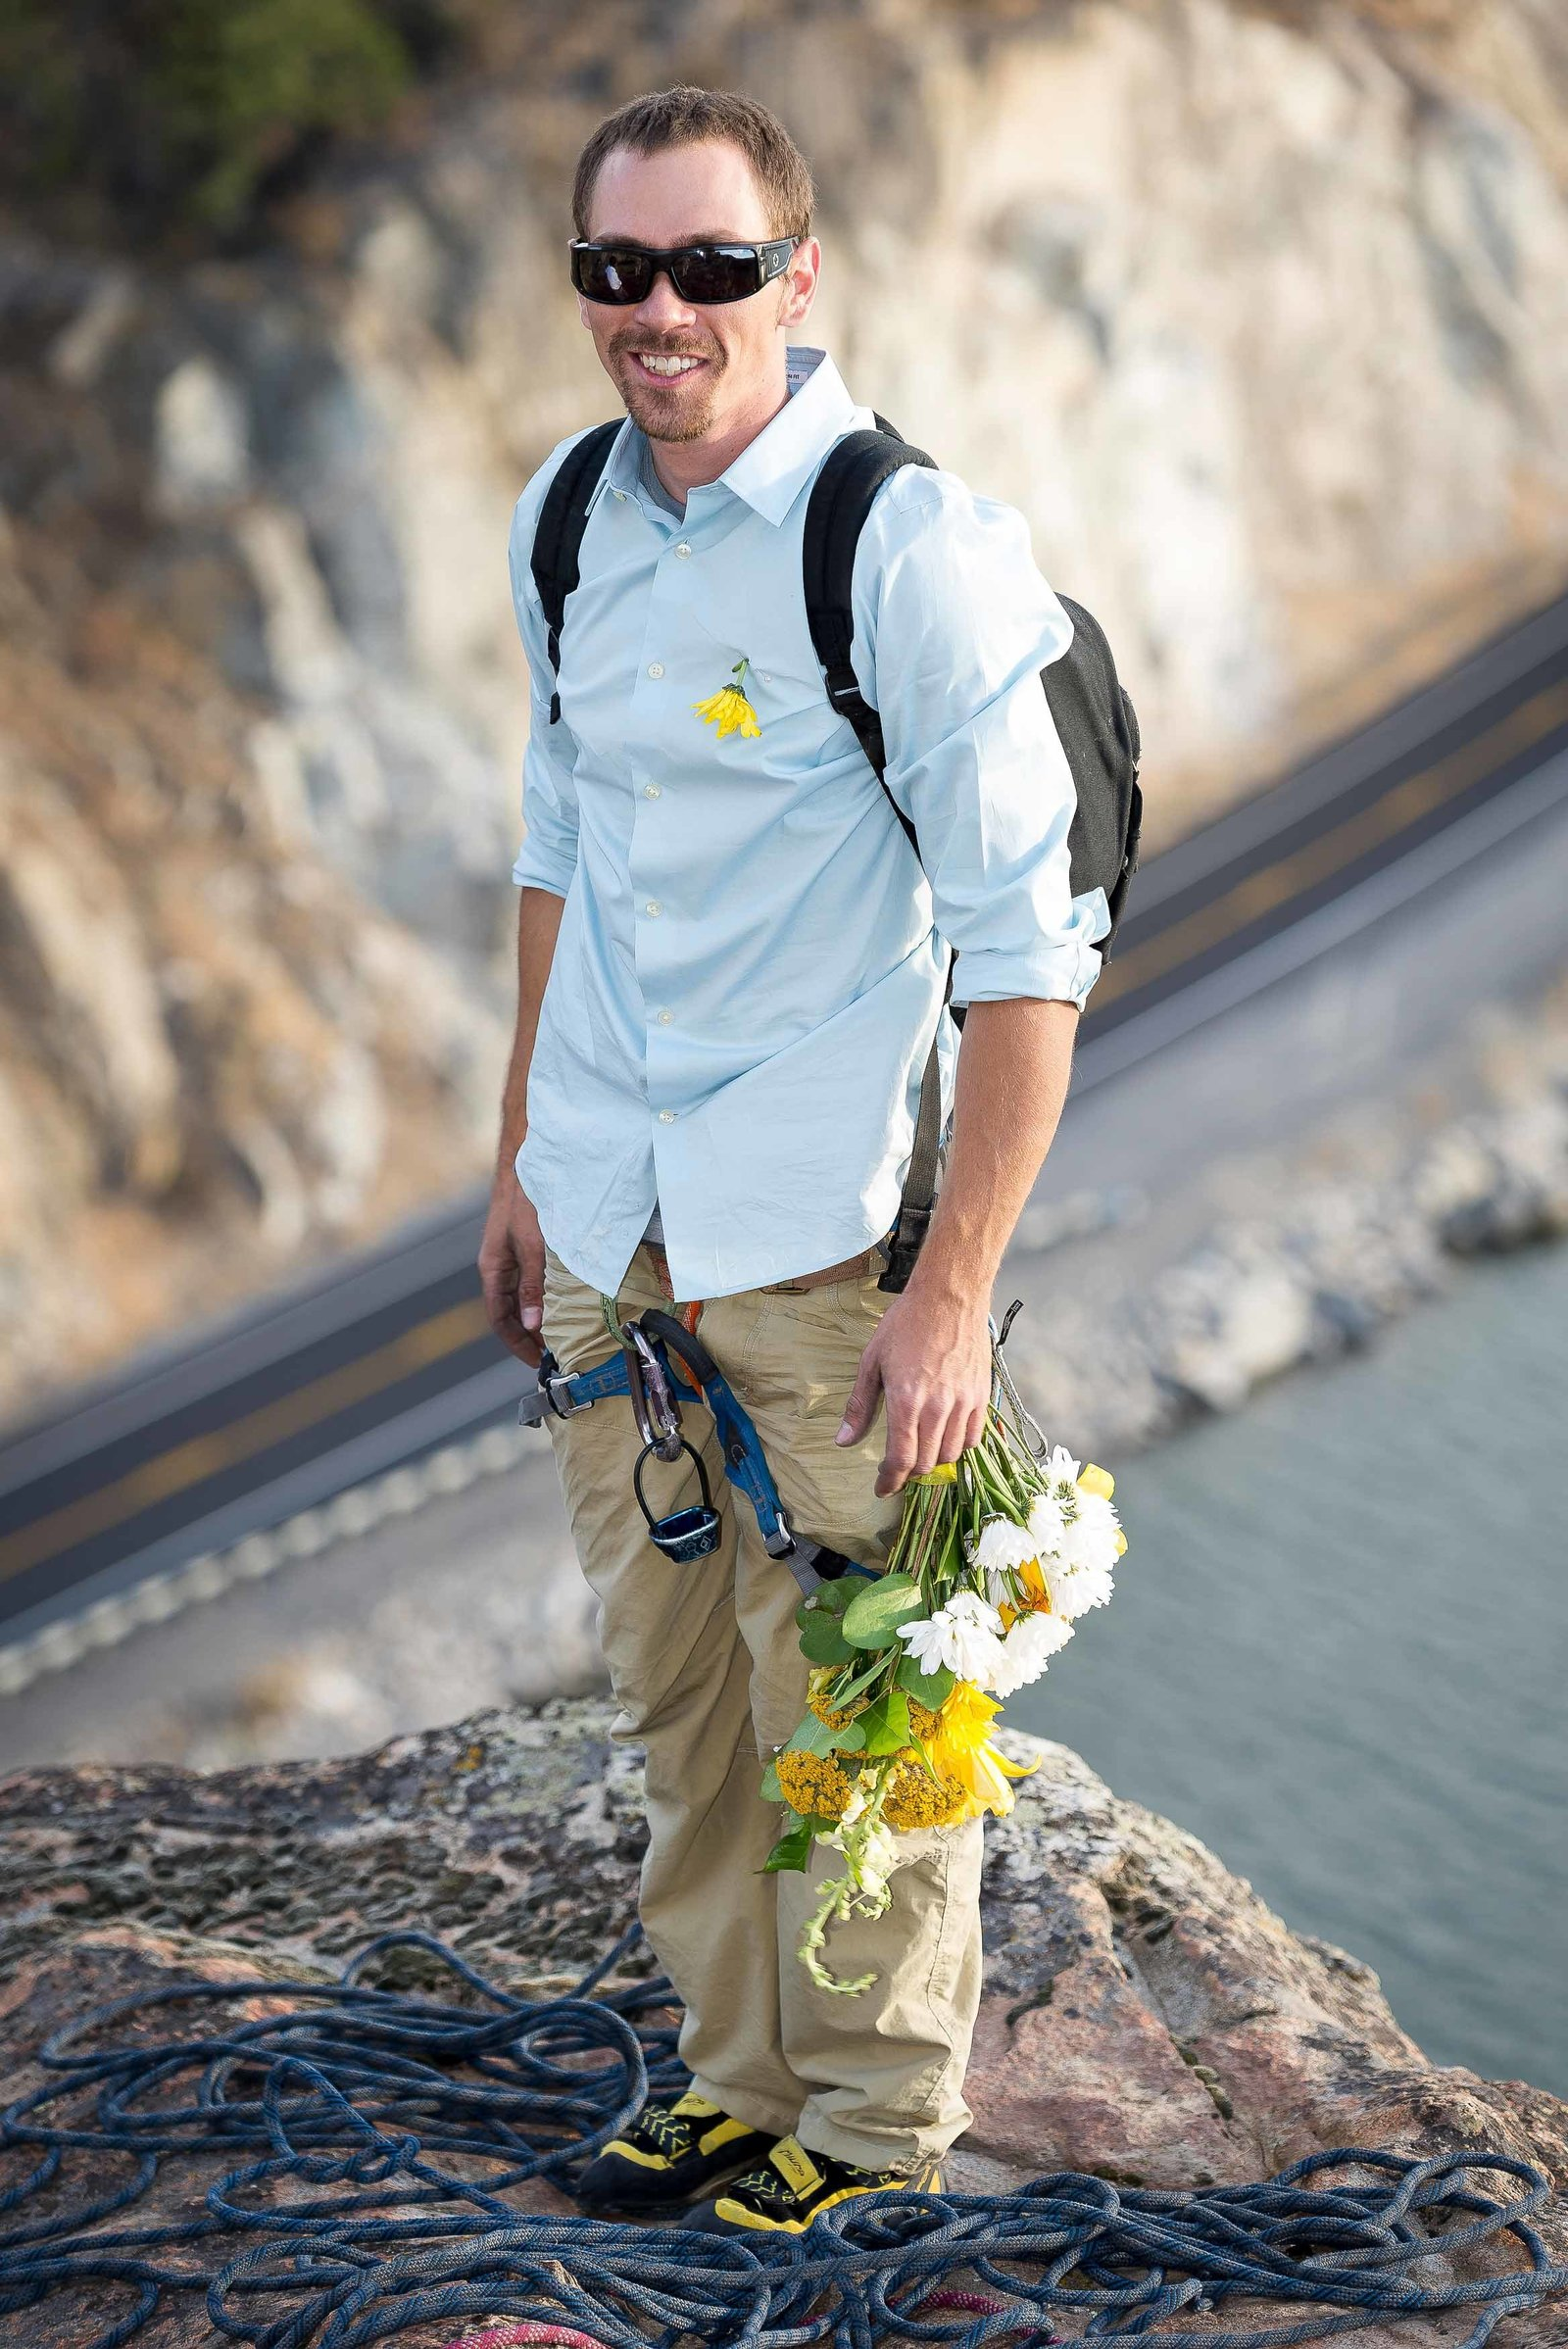 Groomsman-Climbing-Wedding-Intimate-Adventure-Wedding-Photographer